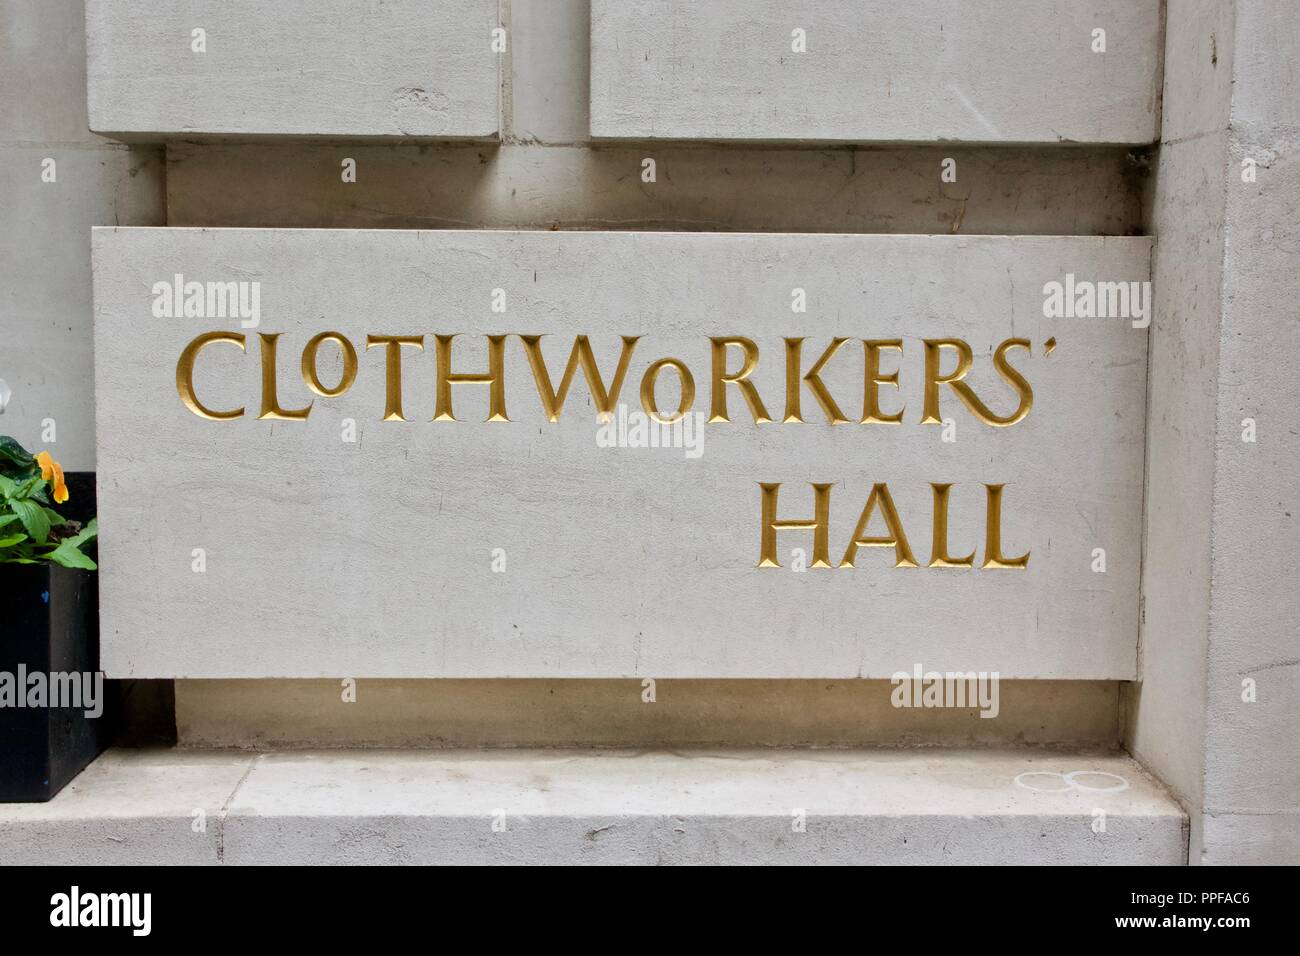 A gold sign outside the Clothworkers' Hall, part of the Clothworkers Company at Dunster Court, City of London - Stock Image